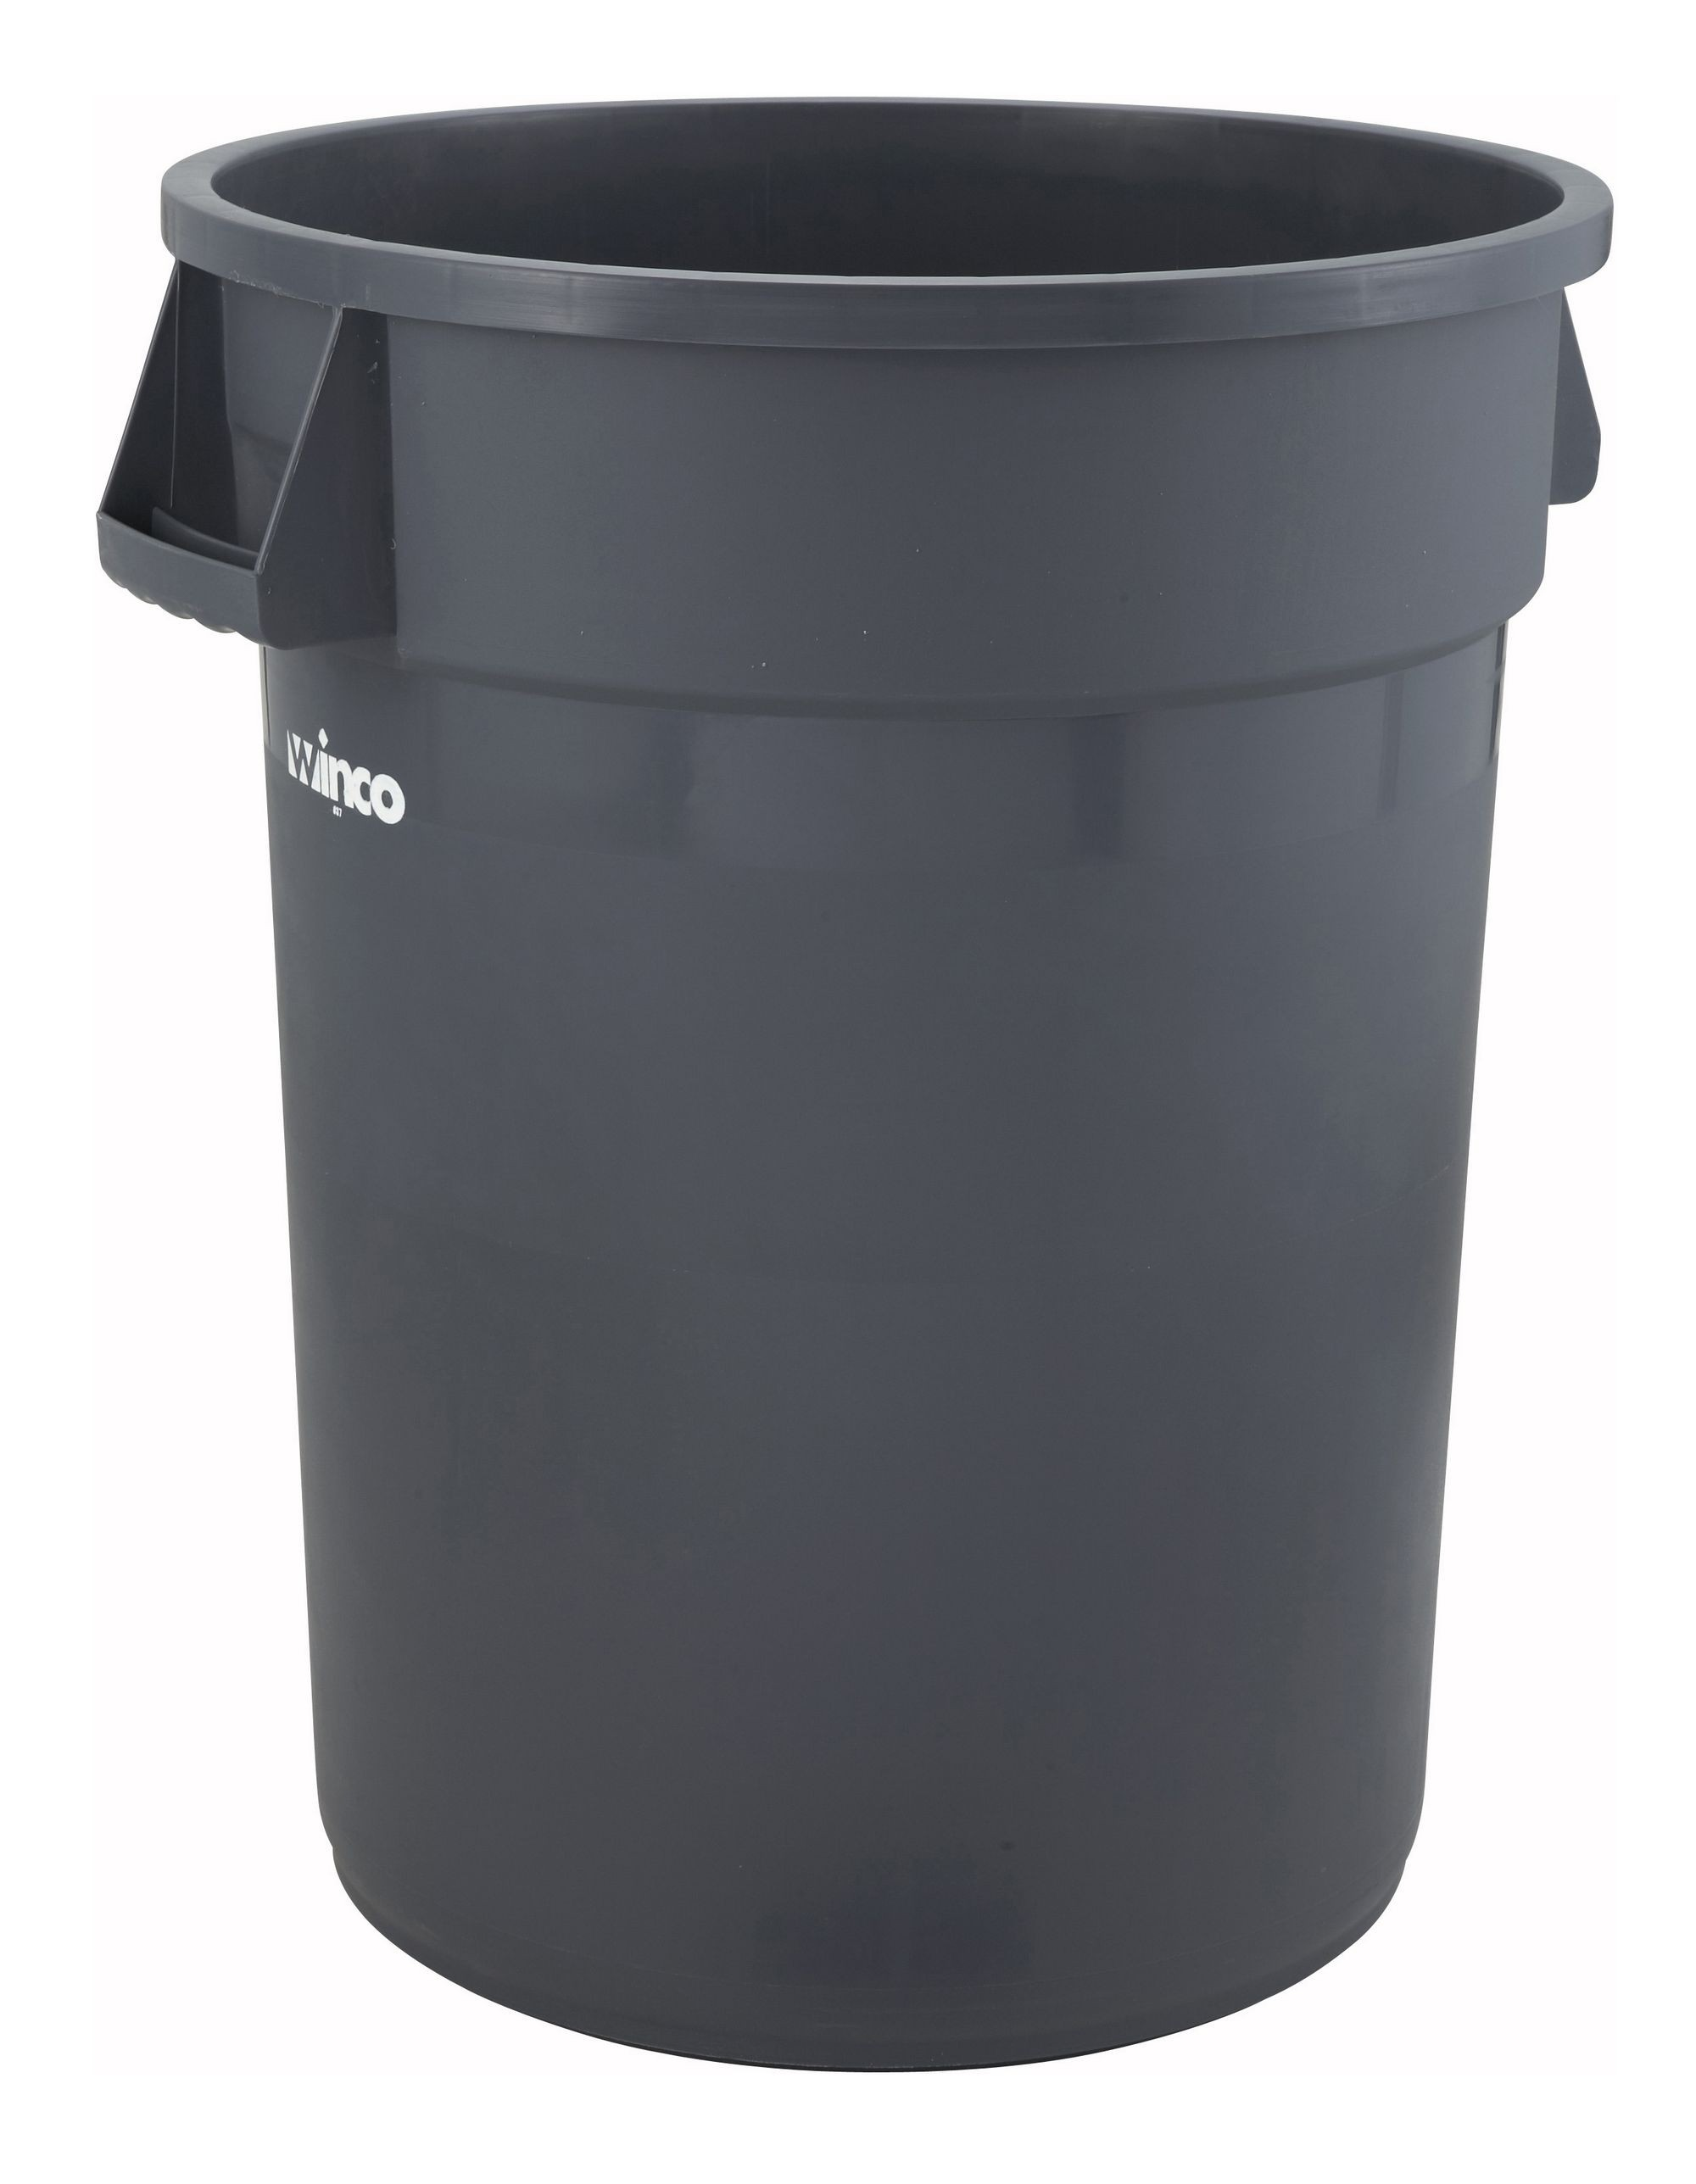 Winco PTC-32G Grey 32 Gallon Trash Can